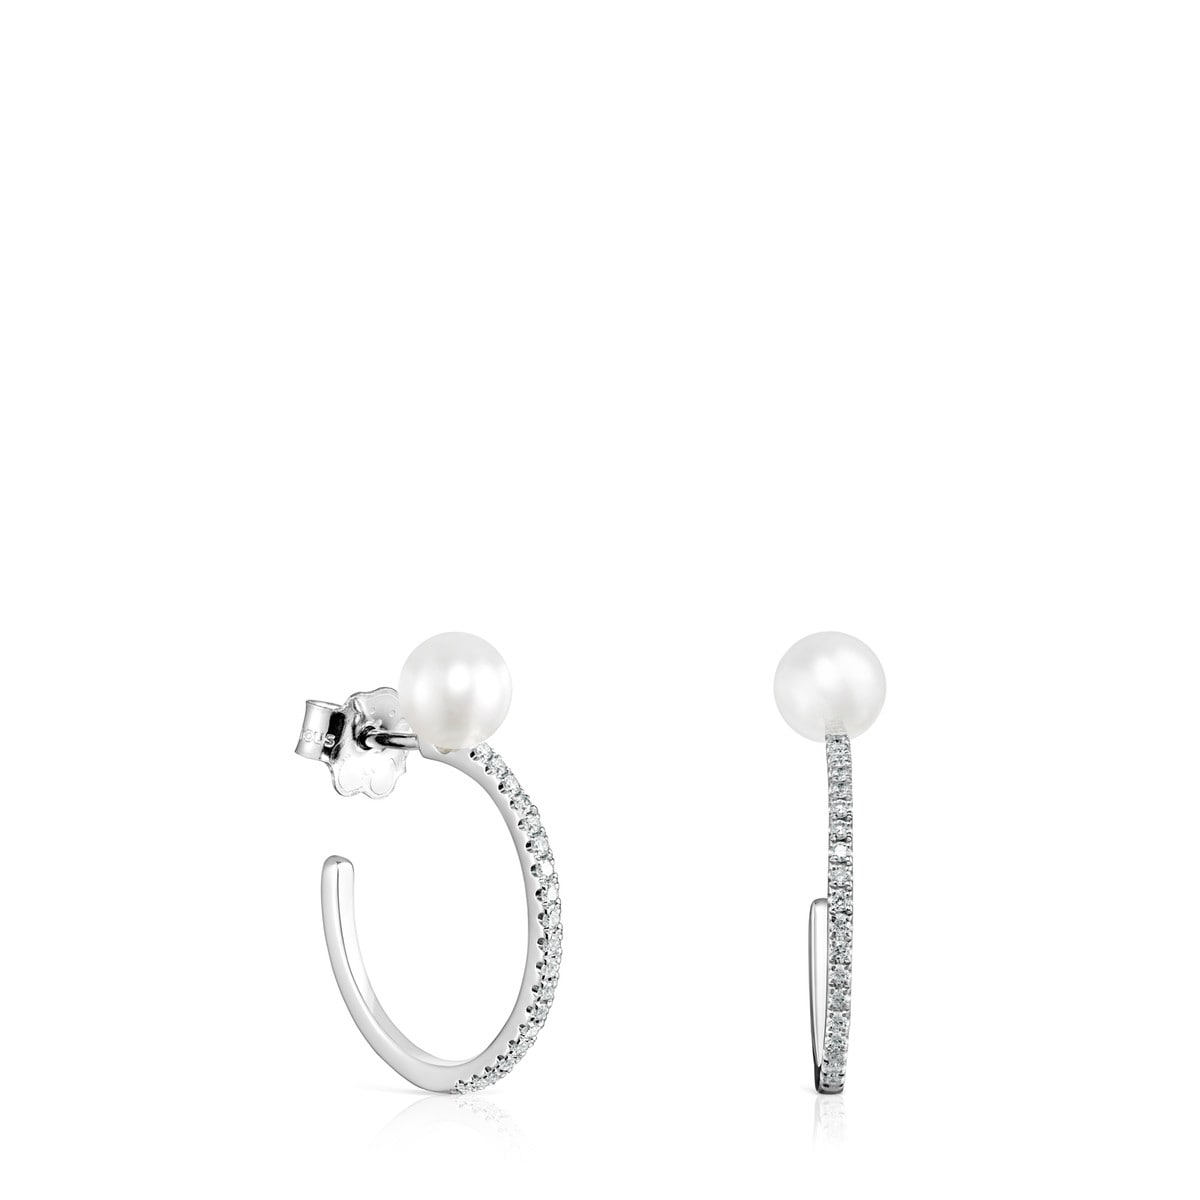 43a59503a8897 Large Les Classiques Earrings in White Gold with Diamond and Pearl